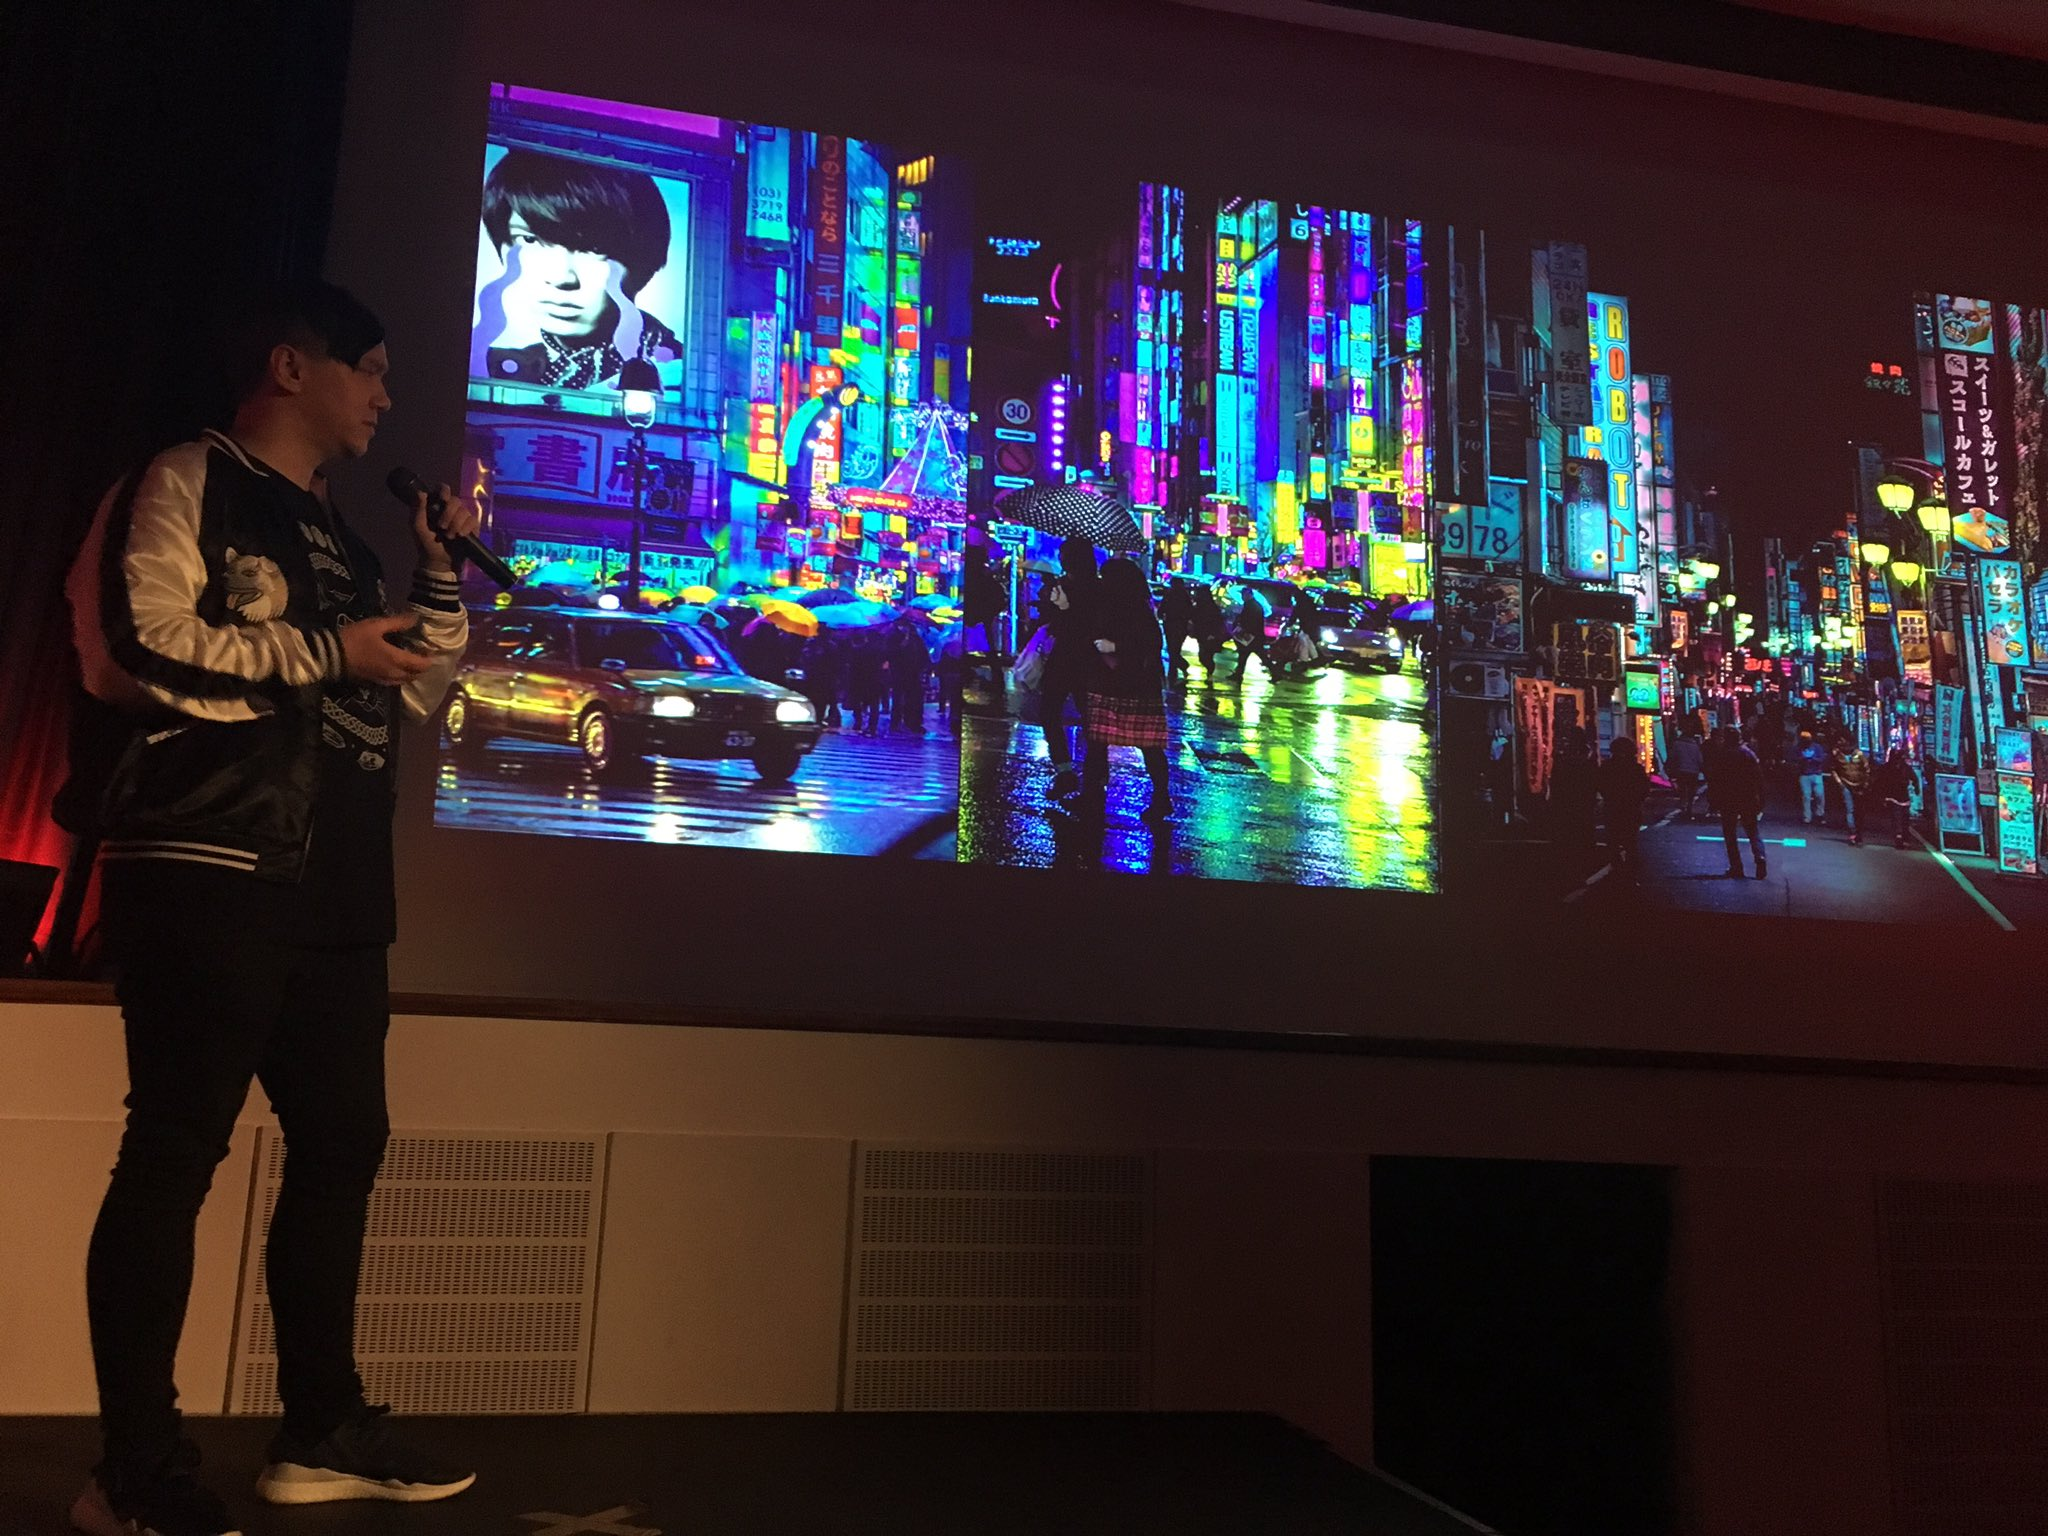 Liam Wong, Art Director, Ubisoft talks honestly about finding his way in games + his incredible accidental career...  @liamwong #GamesPK https://t.co/sweYCcl3un